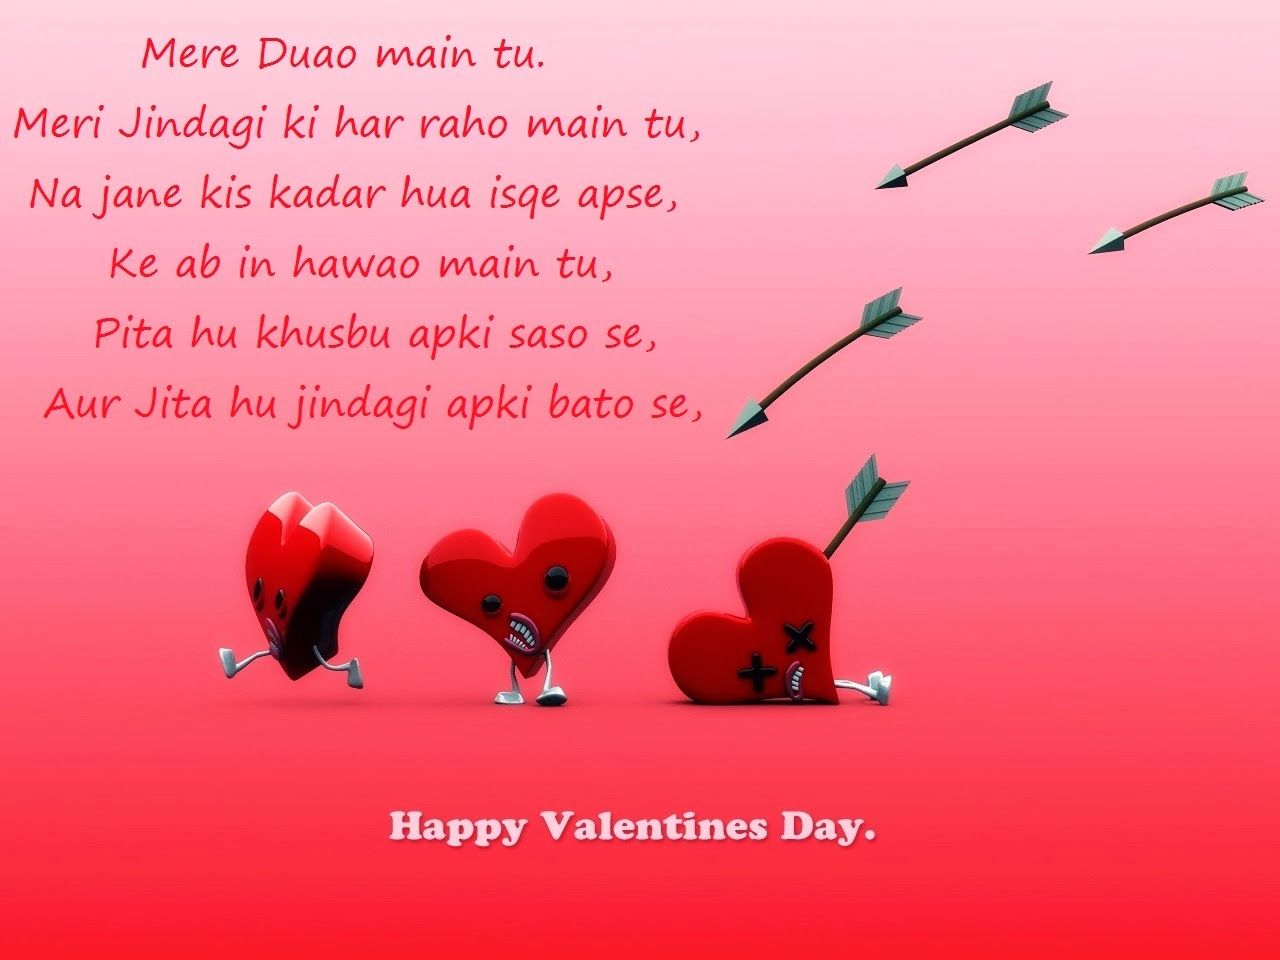 Malayalam Love Quotes For Valentines Day Hover Me